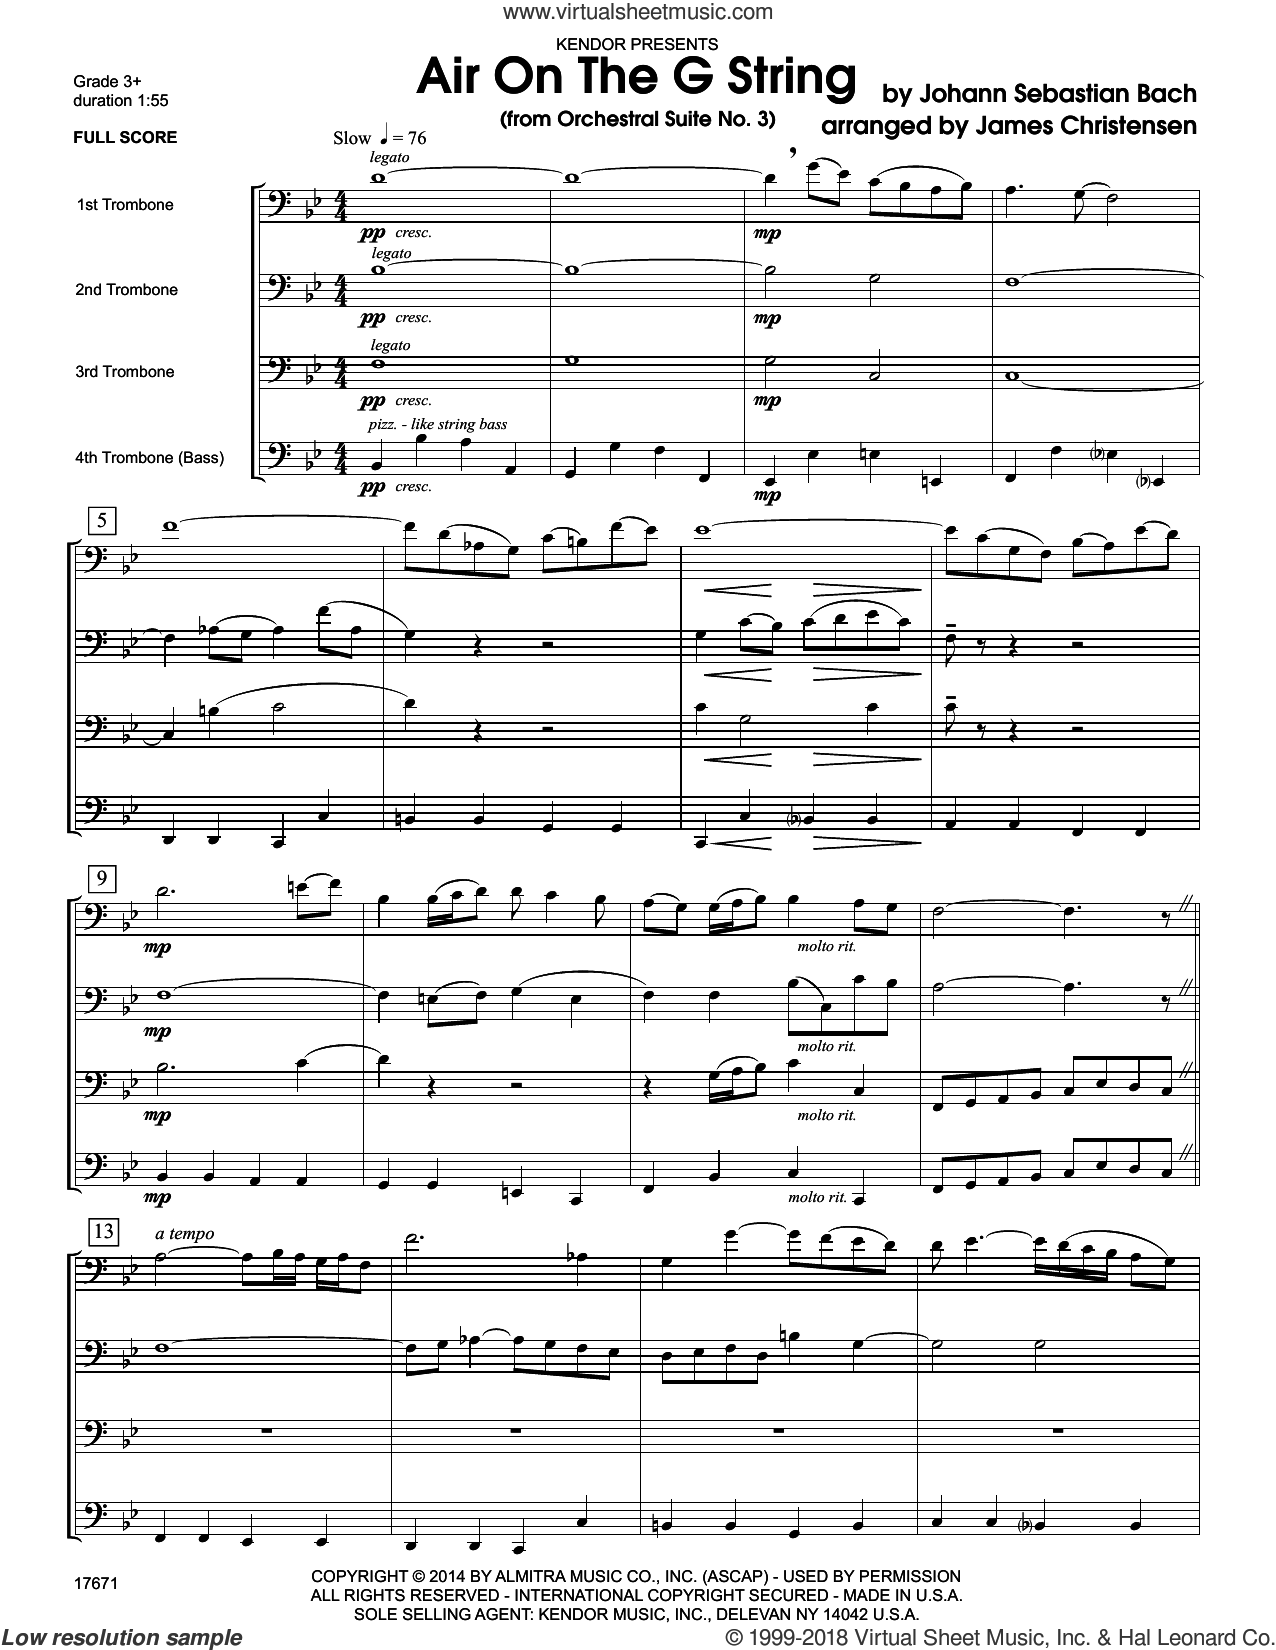 Air On The G String (from Orchestral Suite No. 3) (COMPLETE) sheet music for four trombones by Johann Sebastian Bach and James Christensen, classical score, intermediate four trombones. Score Image Preview.